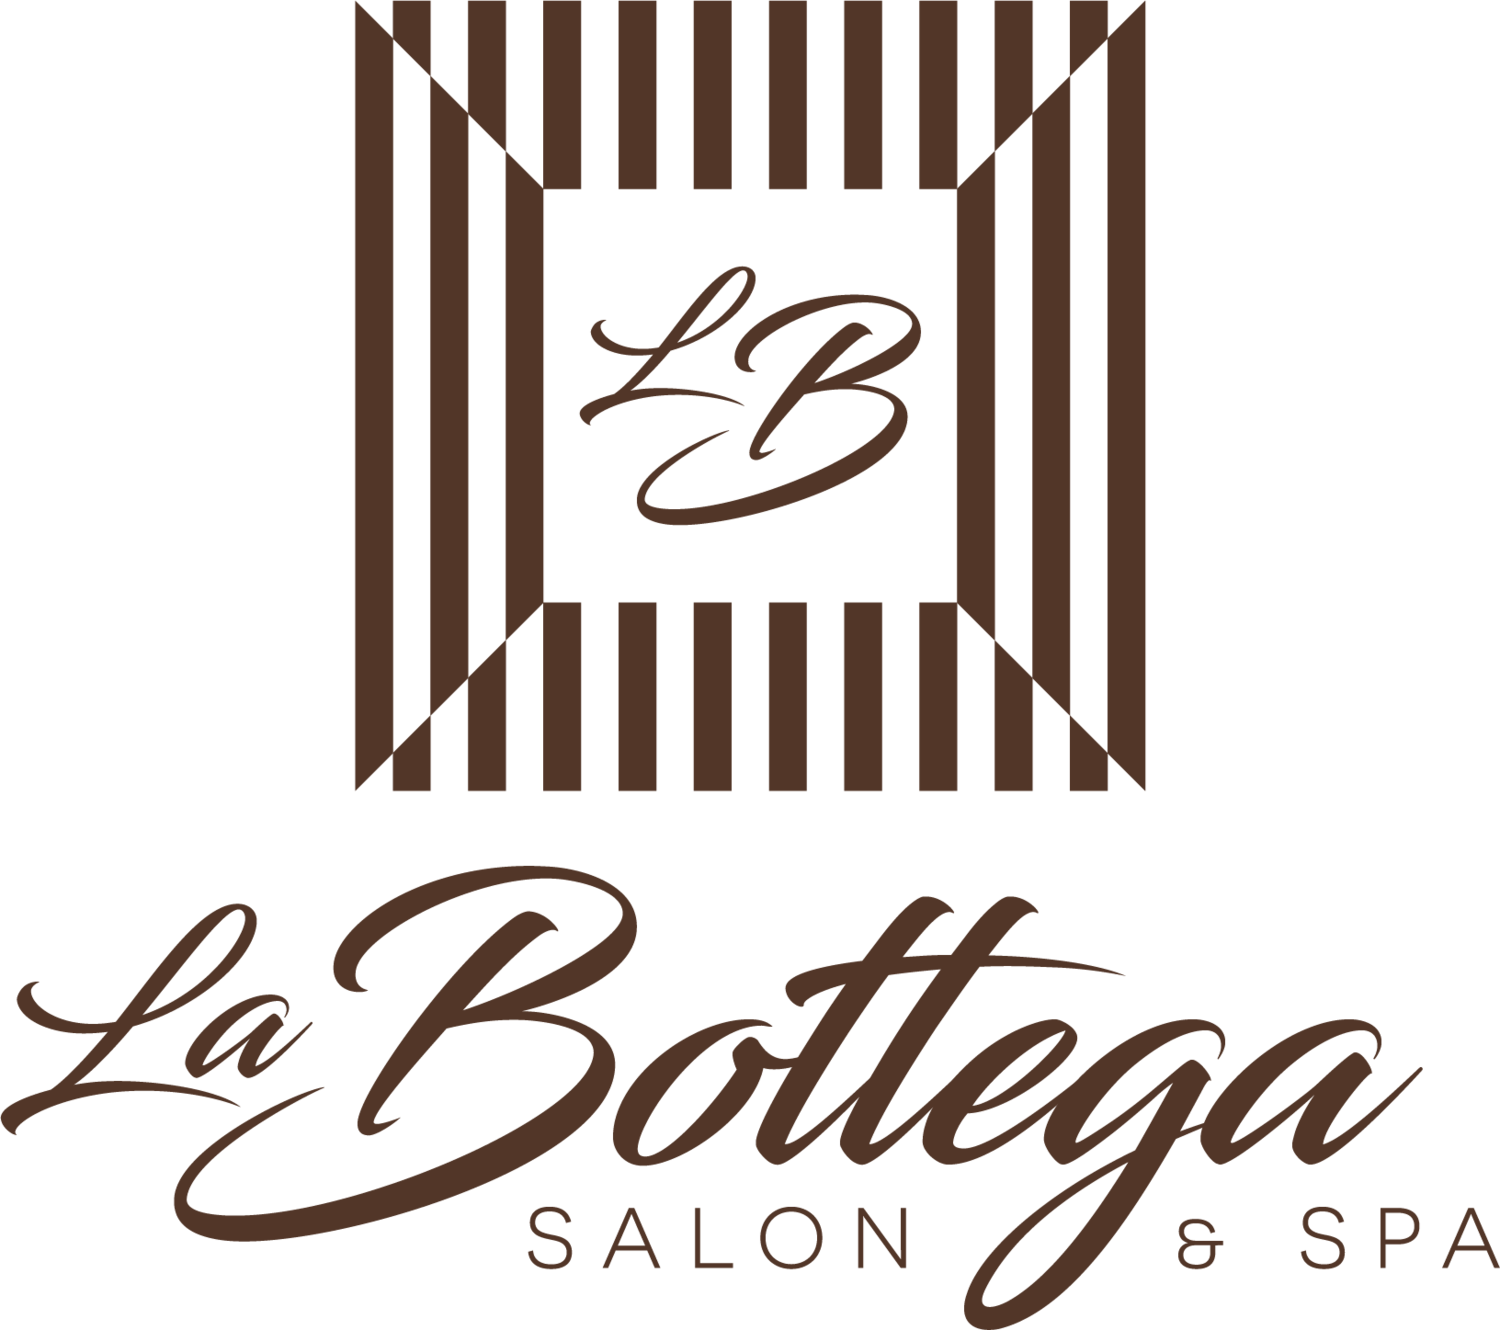 La Bottega Salon & Spa